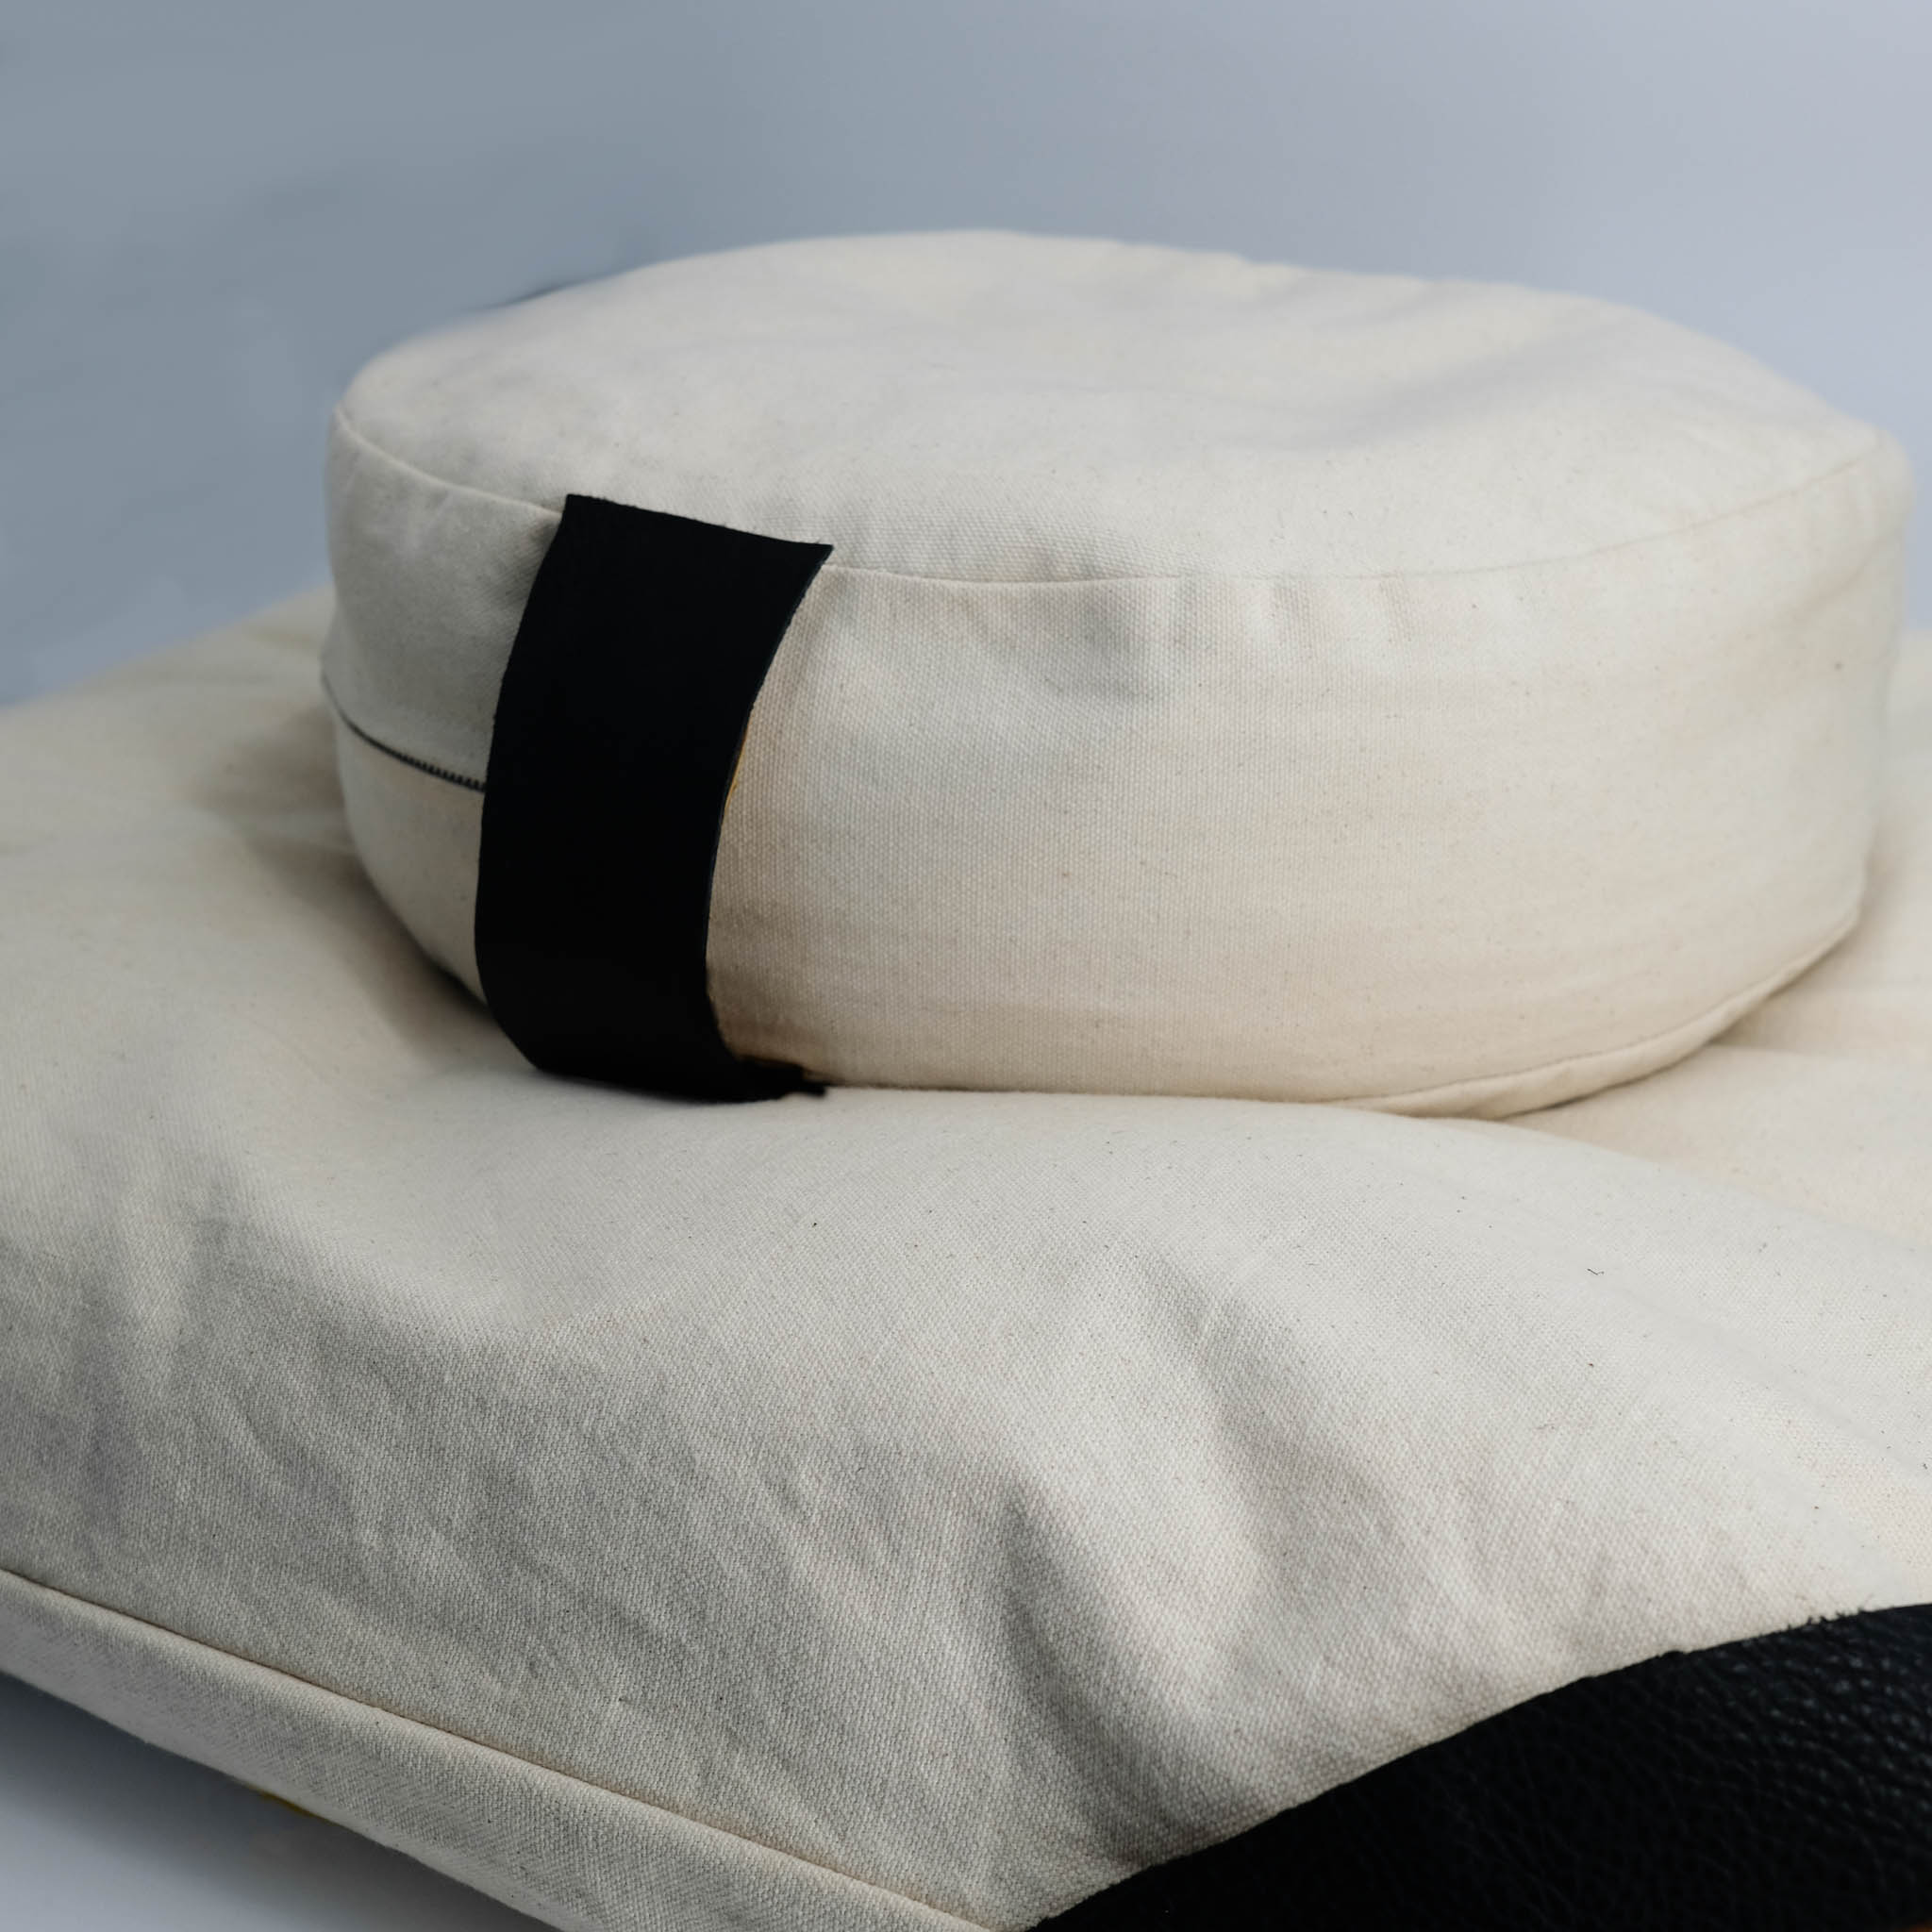 meditation cushion set naturally dyed sustainable organic cotton natural black top view